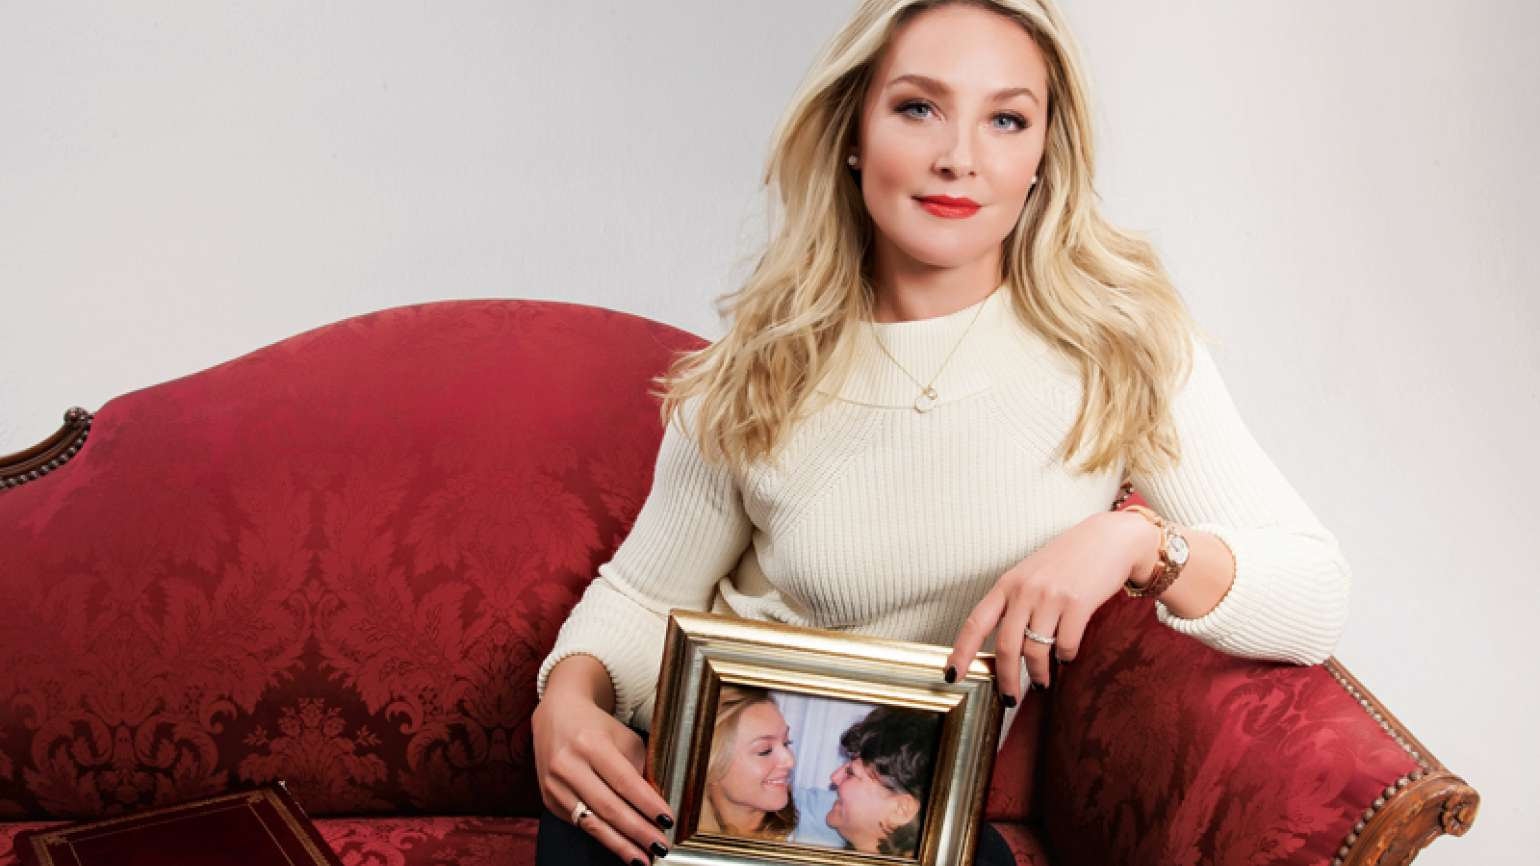 Elisabeth Rohm poses with a framed picture of her with her mother.